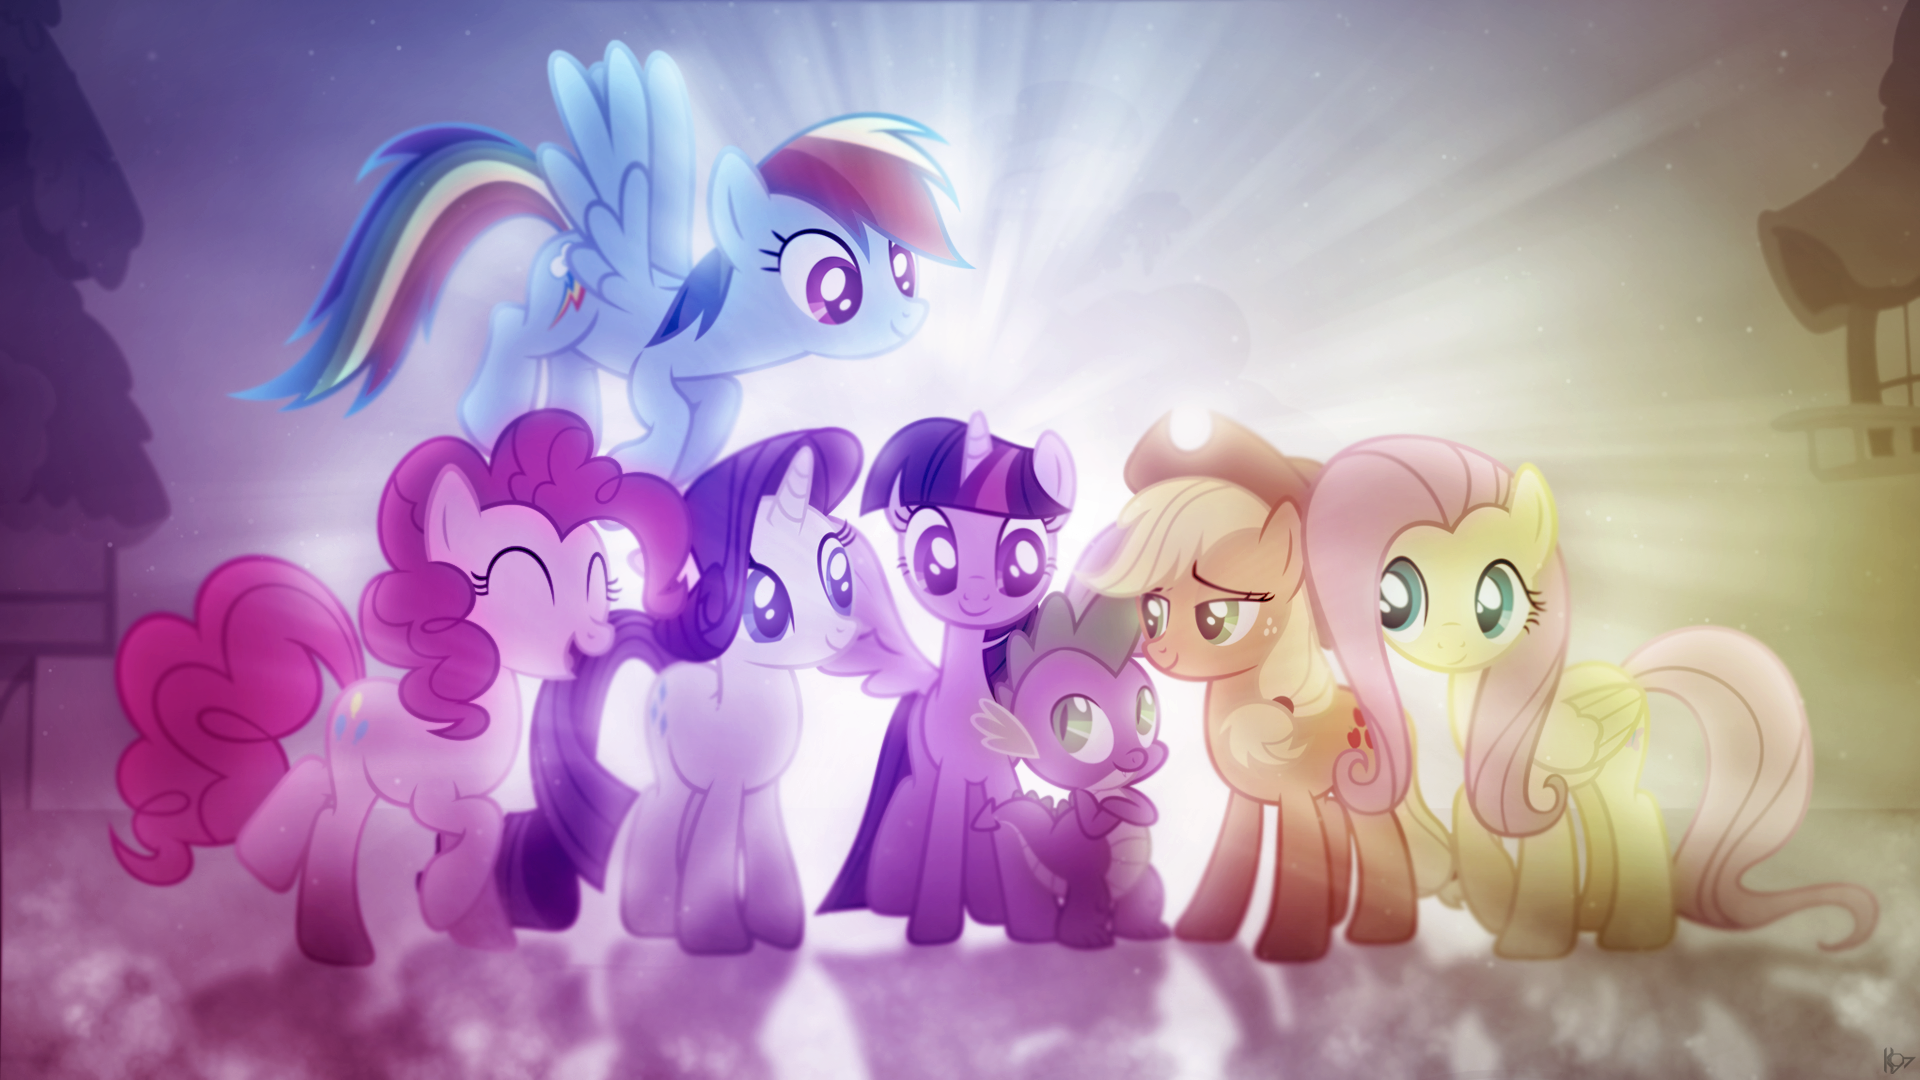 TV Show - My Little Pony: Friendship is Magic  Dragon Fluttershy (My Little Pony) My Little Pony Princess Twilight Sparkle Applejack (My Little Pony) Twilight Sparkle Rainbow Dash Pinkie Pie Rarity (My Little Pony) Vector Wallpaper